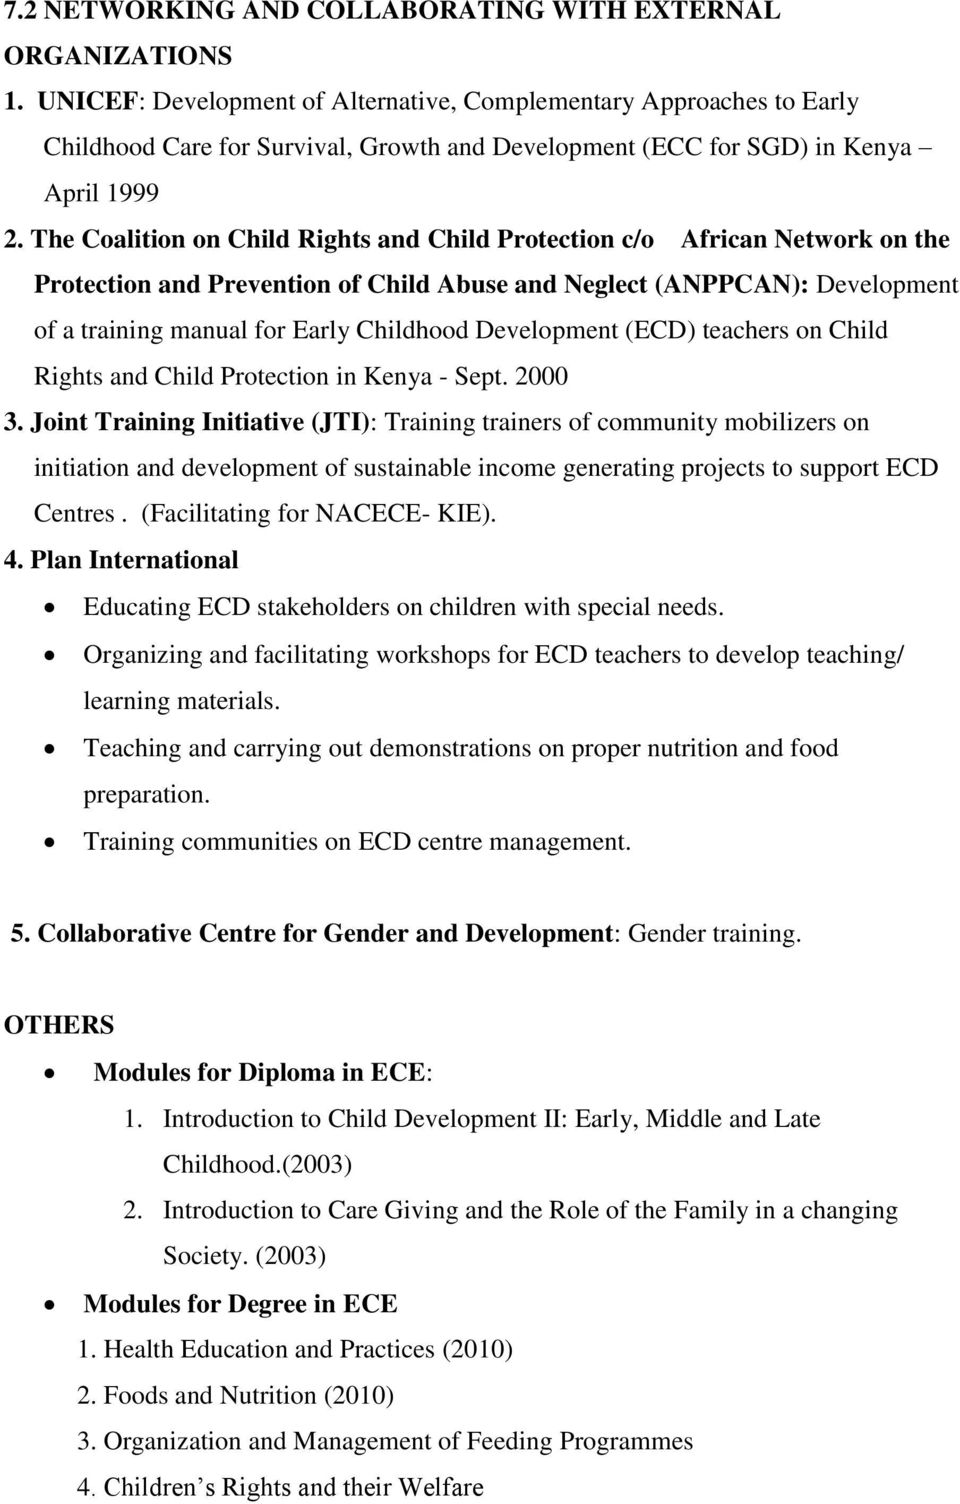 The Coalition on Child Rights and Child Protection c/o African Network on the Protection and Prevention of Child Abuse and Neglect (ANPPCAN): Development of a training manual for Early Childhood